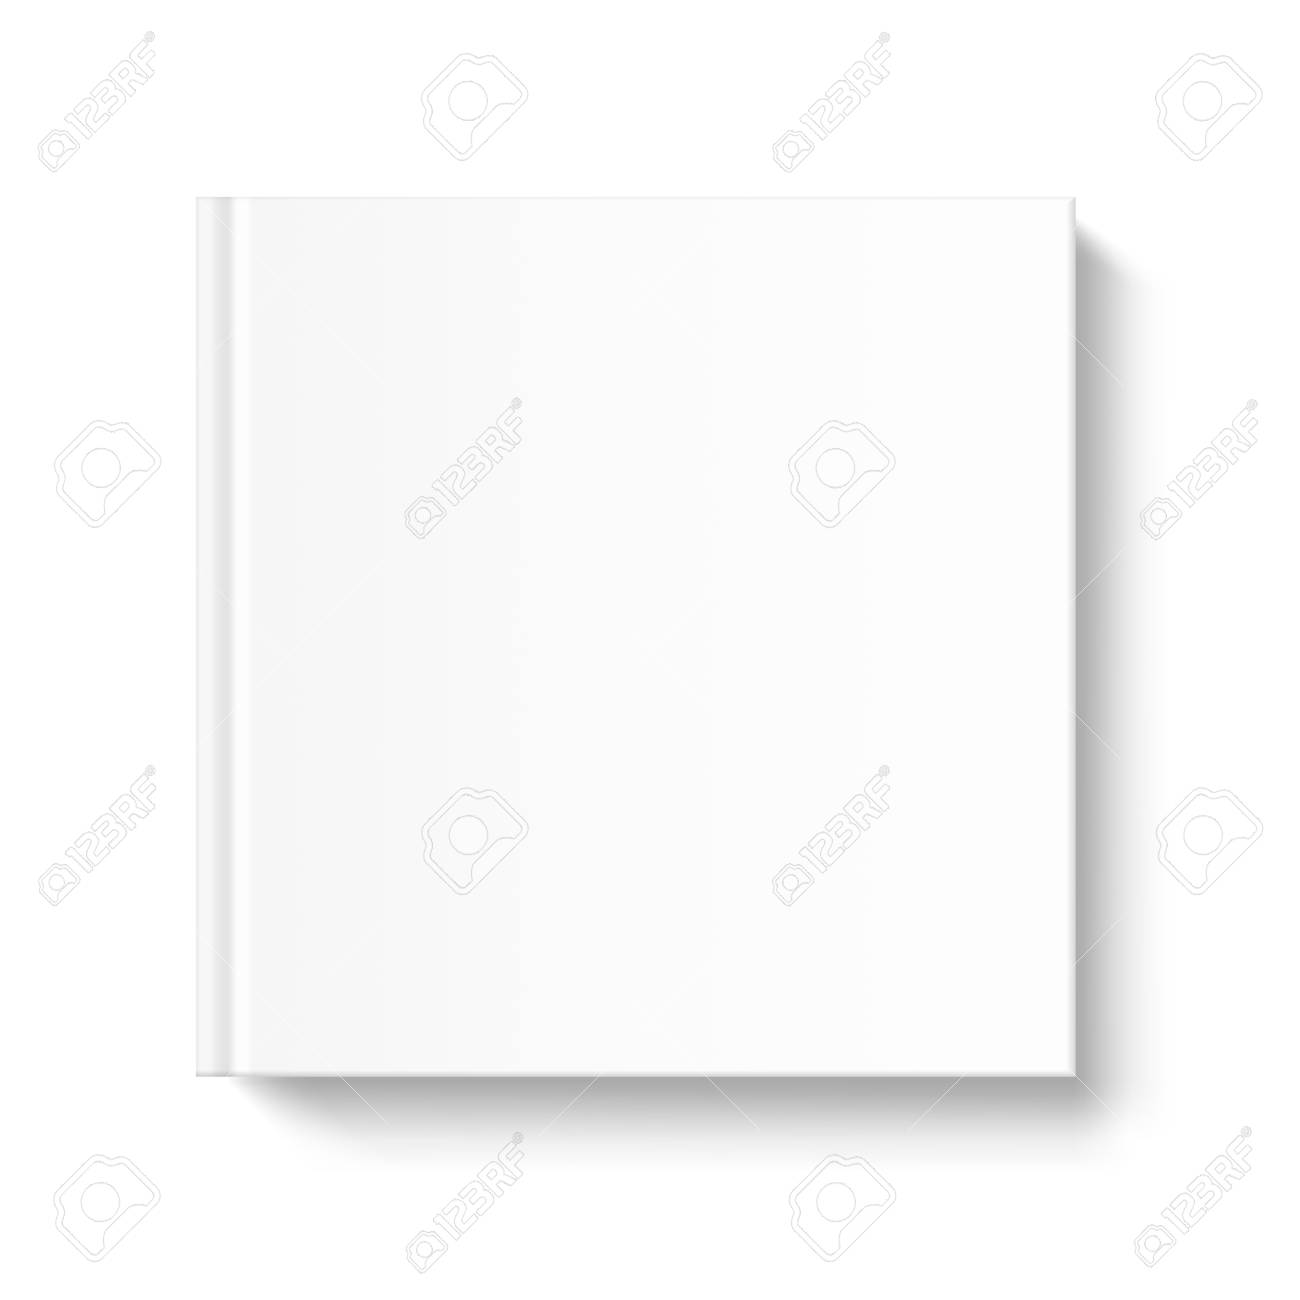 Mock up square book cover on white background. Vector template for your design. - 78460269